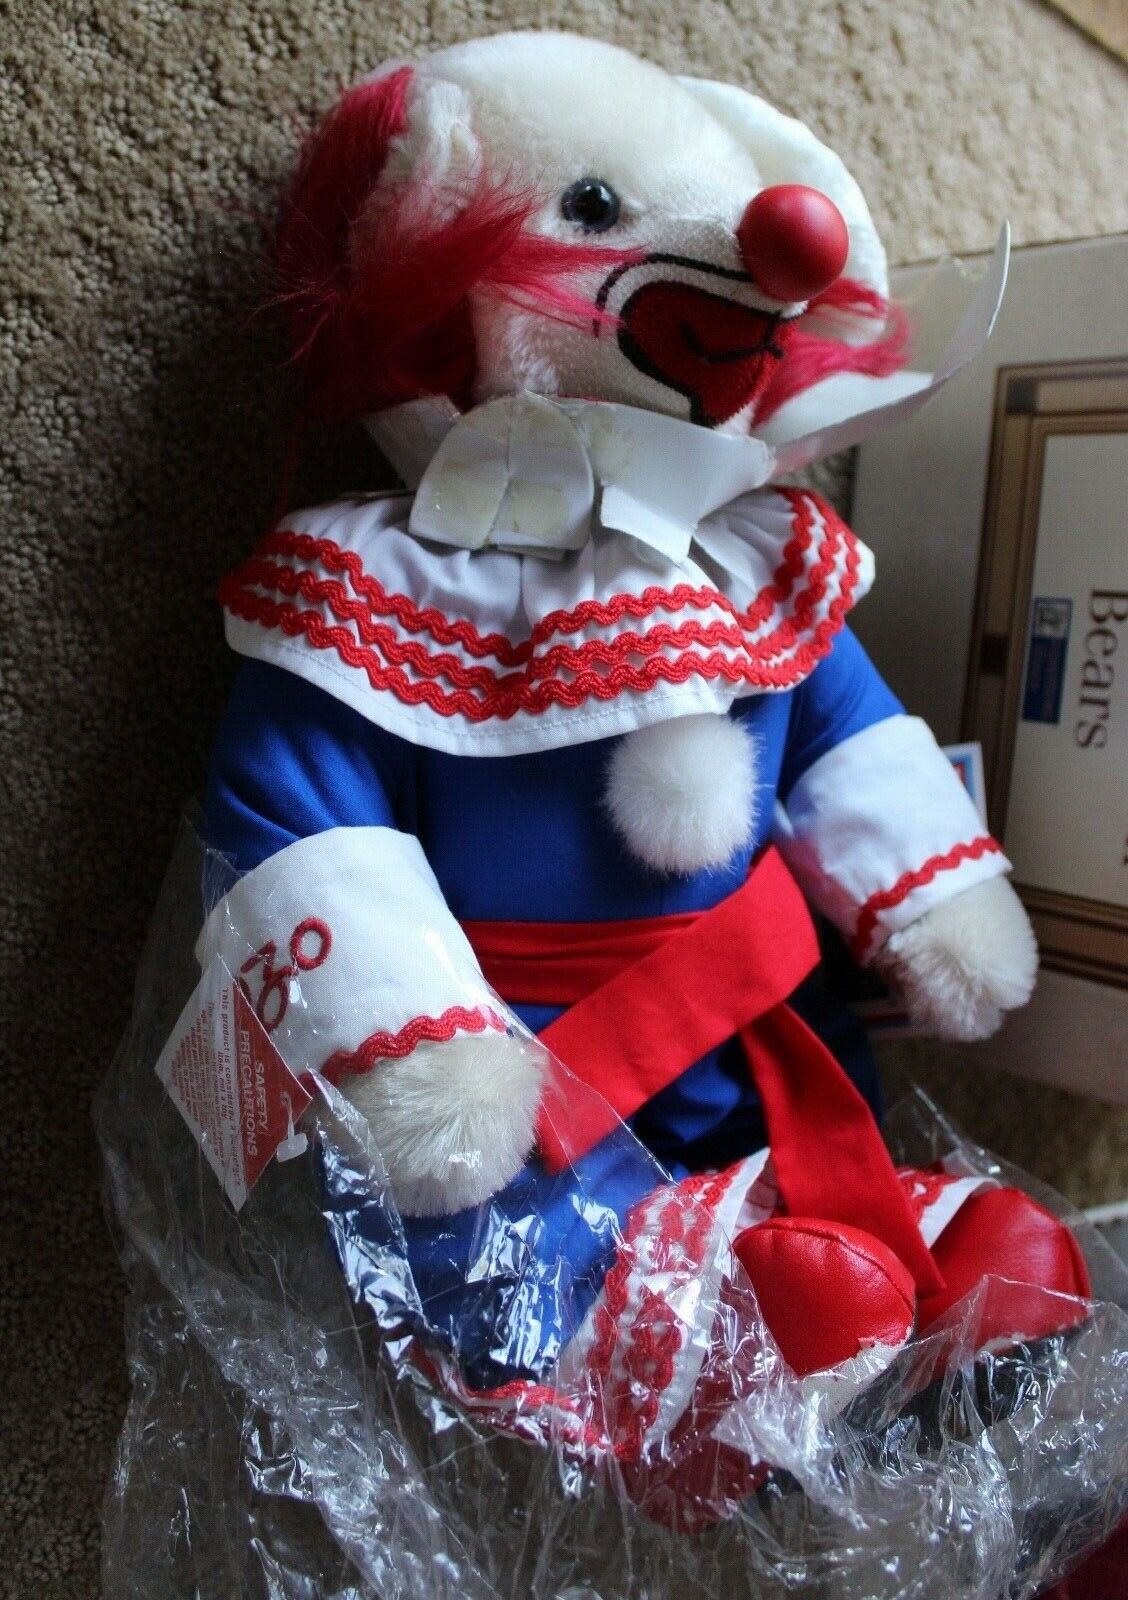 RARE Limited Edition 25 of 1000 Cooperstown Bears Bozo The Clown with Box & COA